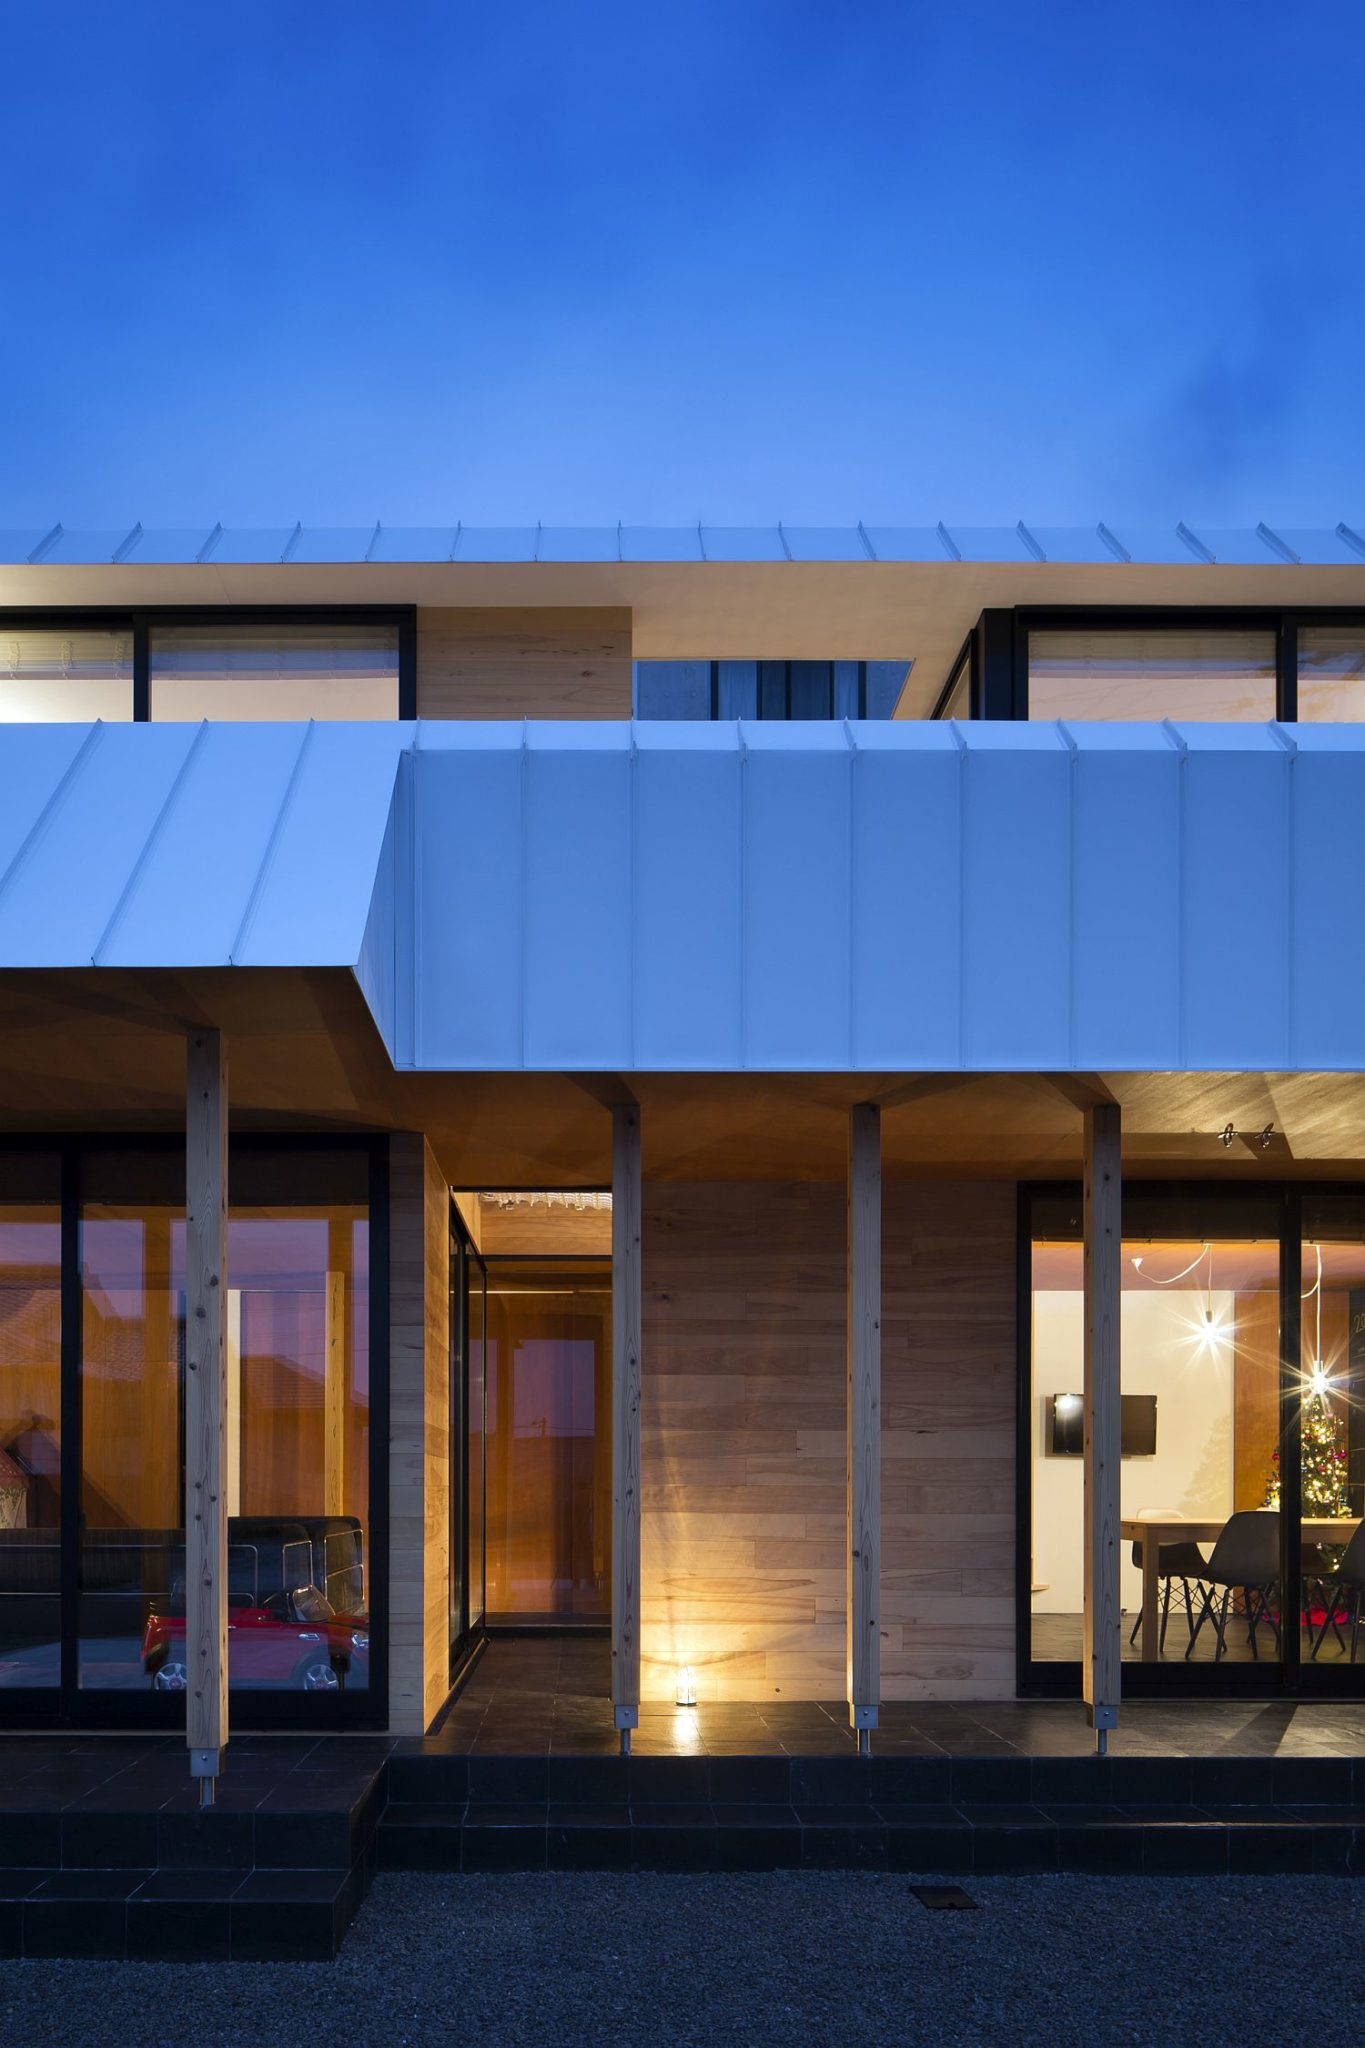 Unique design of the home is perfect for withstanding gusty winds